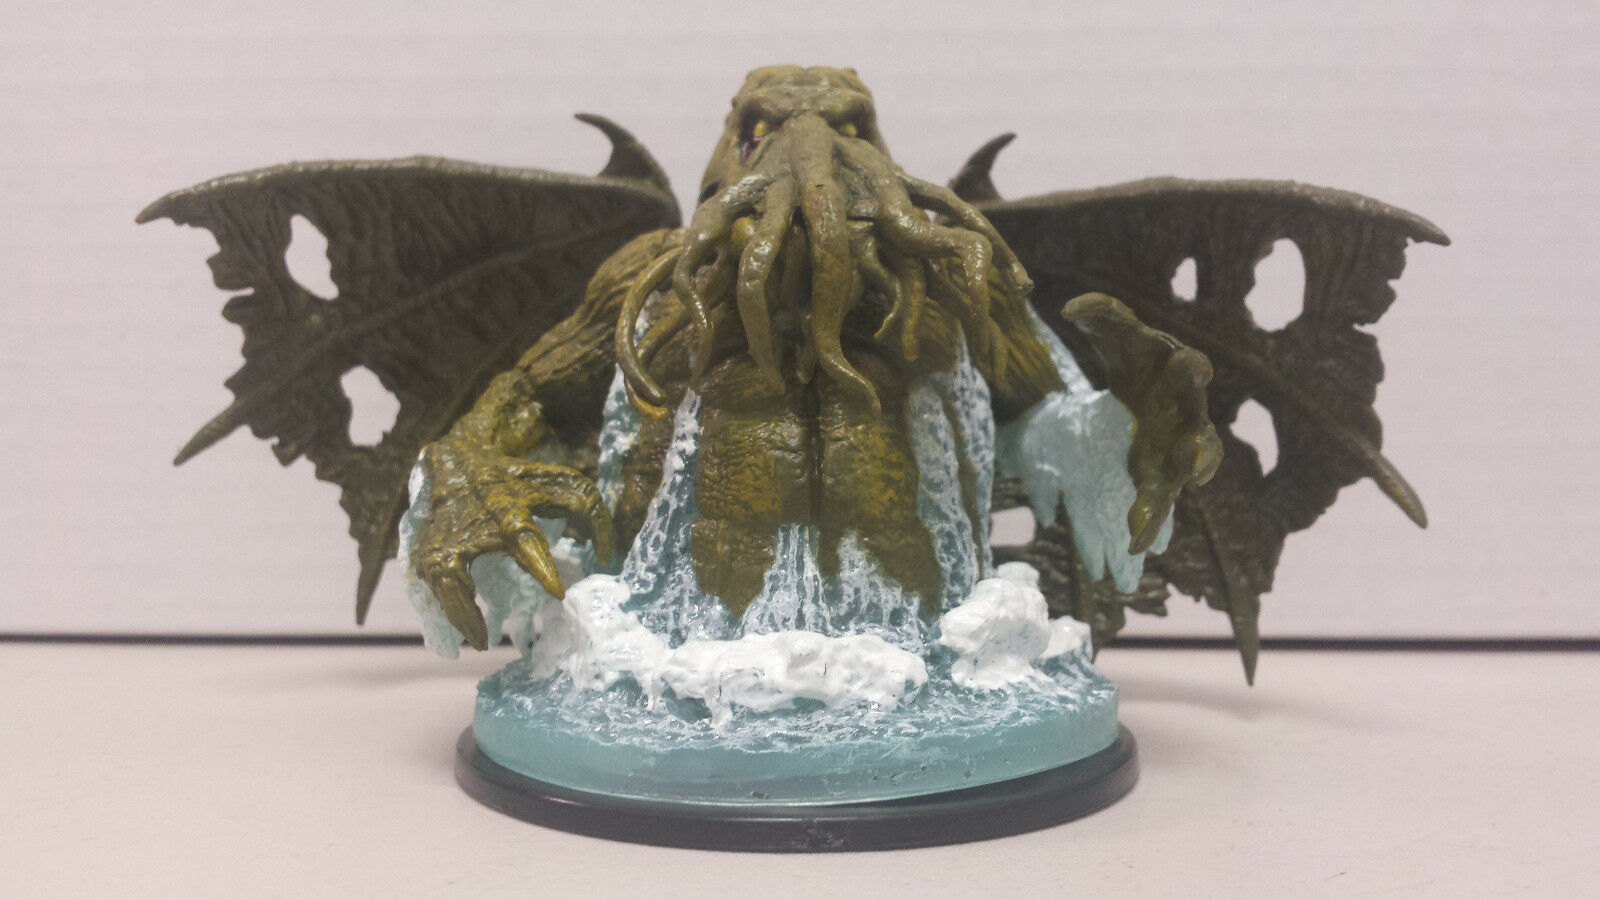 Star Spawn of Cthulhu Pathfinder Dungeons & Dragons Minis Miniatures Deadly Foes